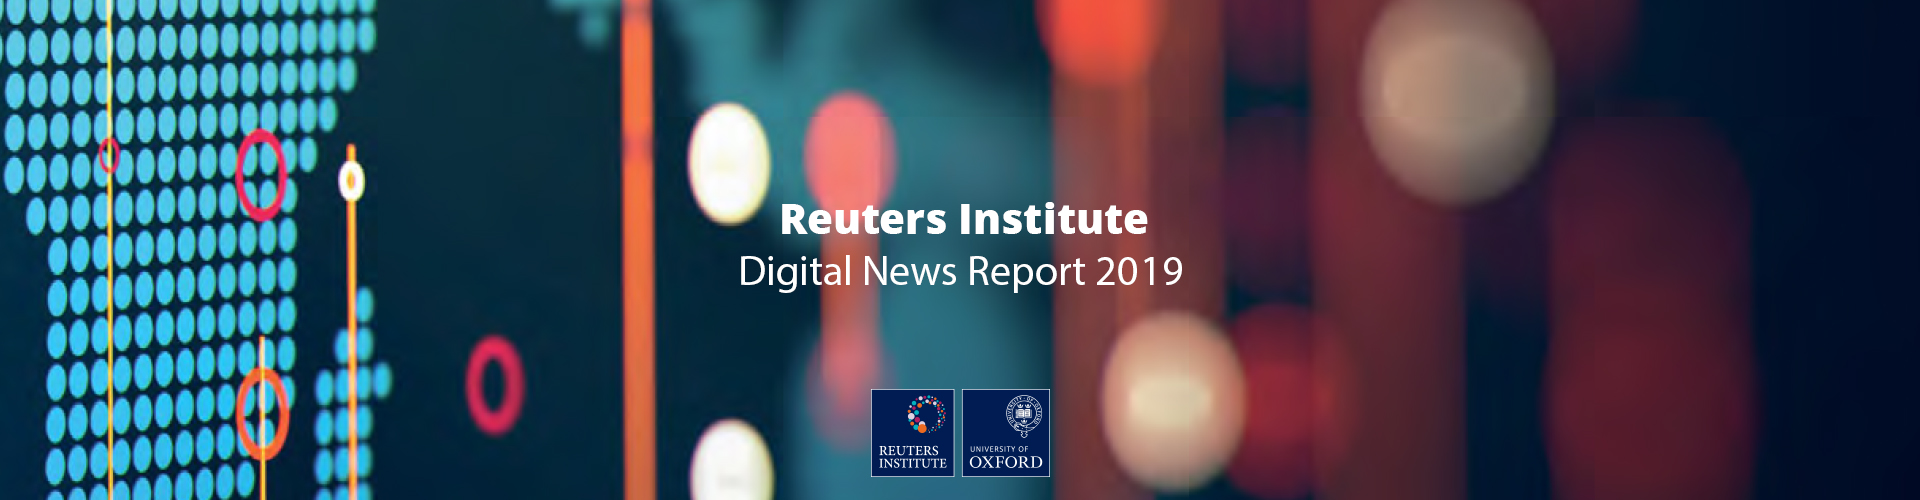 Header image of Key Takeaways from Reuters Digital News Report 2019